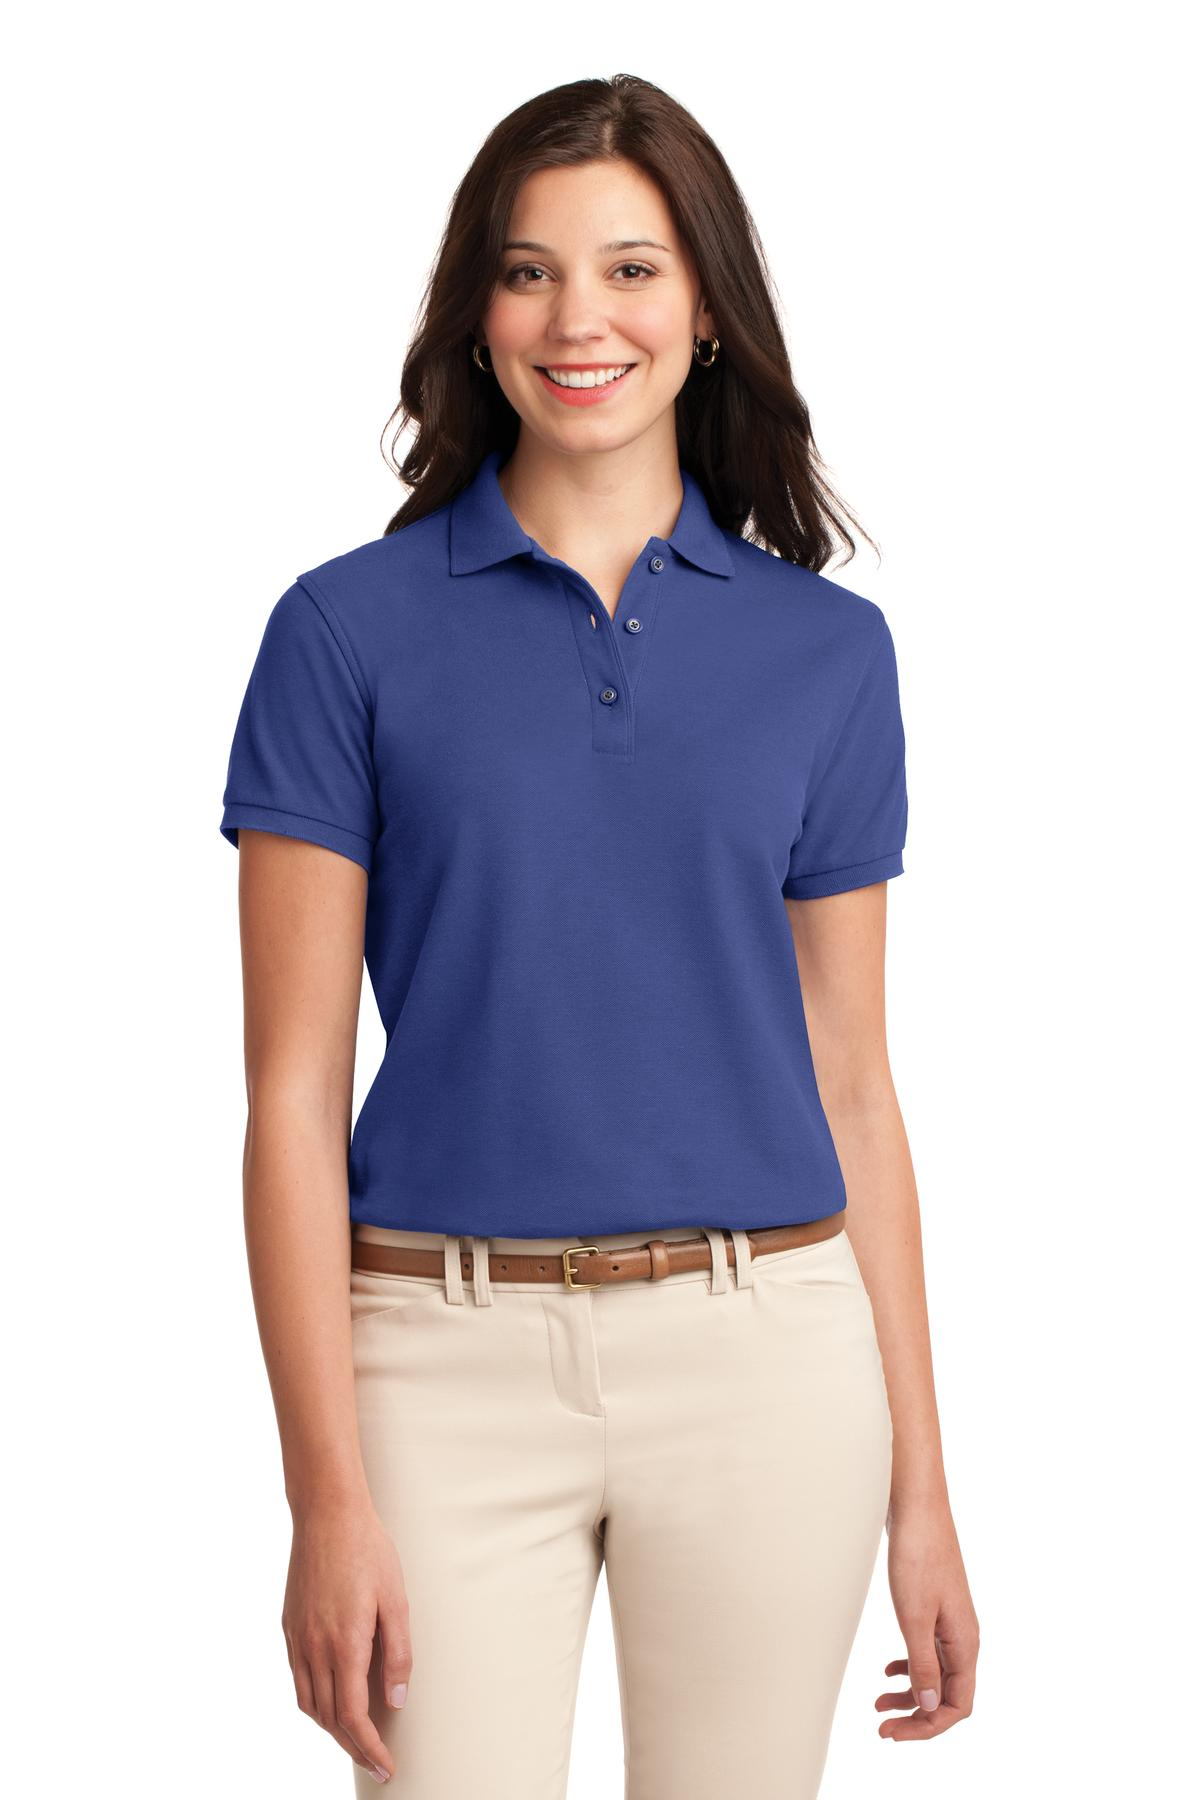 Navy Port Authority Ladies Silk Touch Polo.